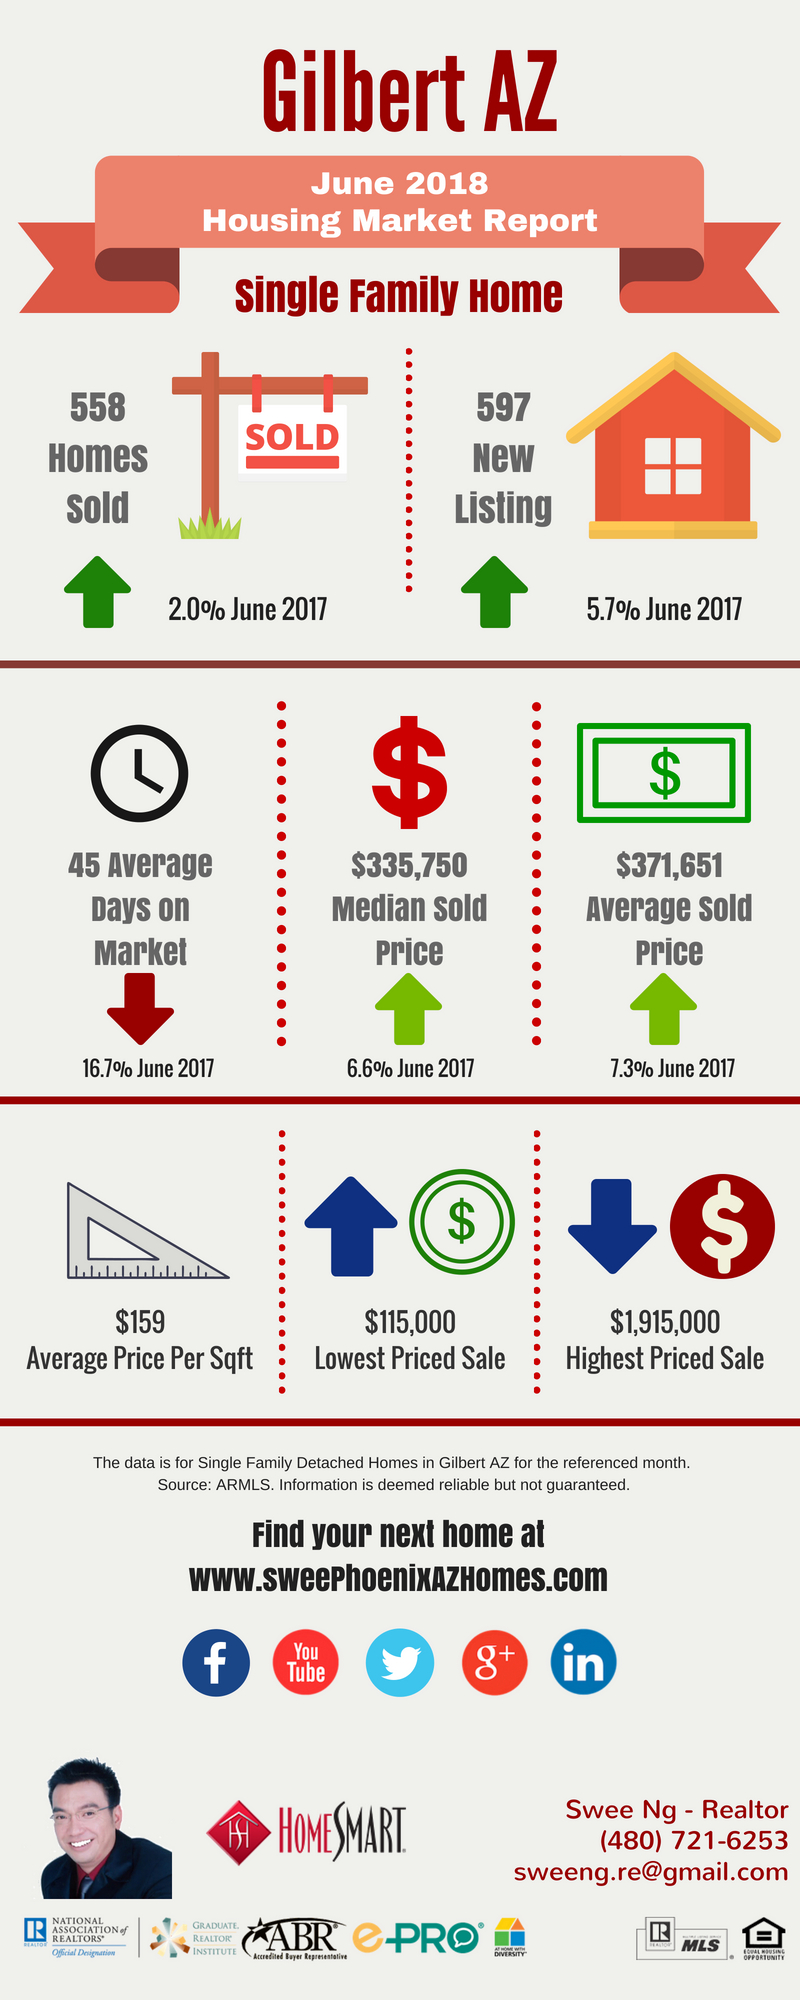 Gilbert AZ Housing Market Trends Report June 2018 by Swee Ng, Real Estate and House Value